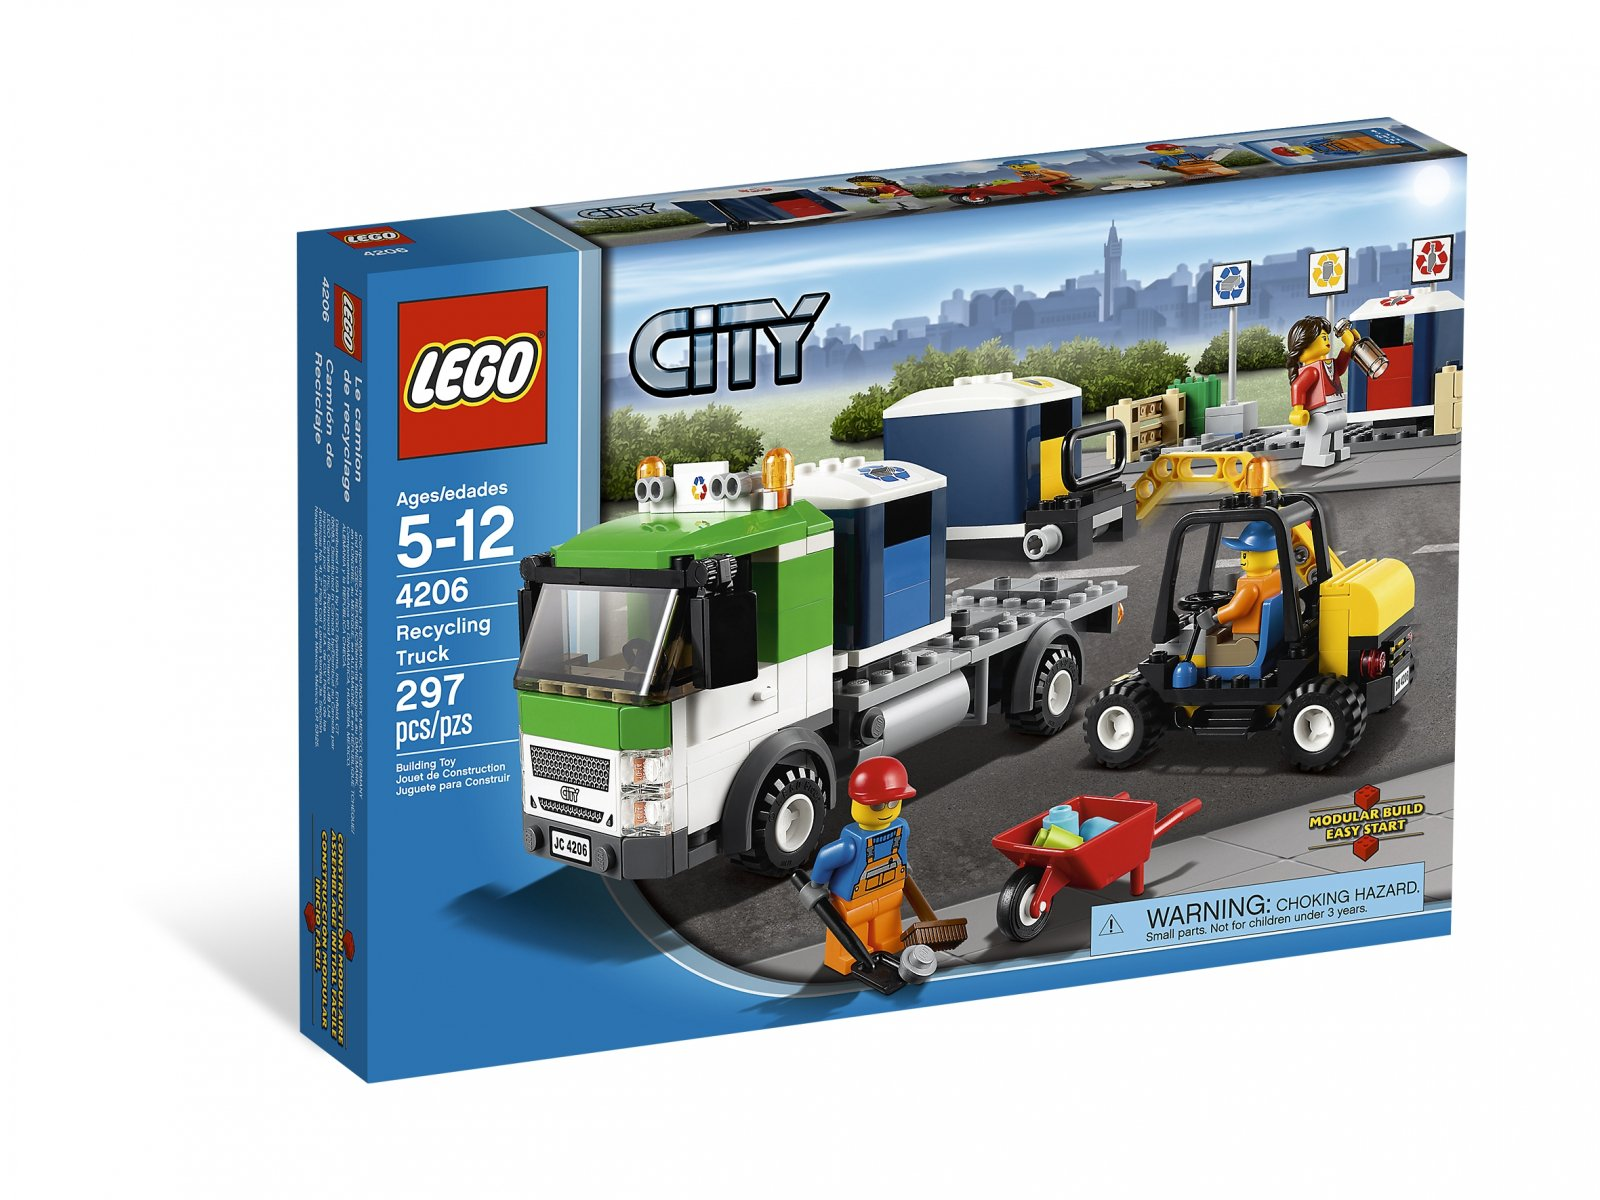 LEGO 4206 Recycling Truck